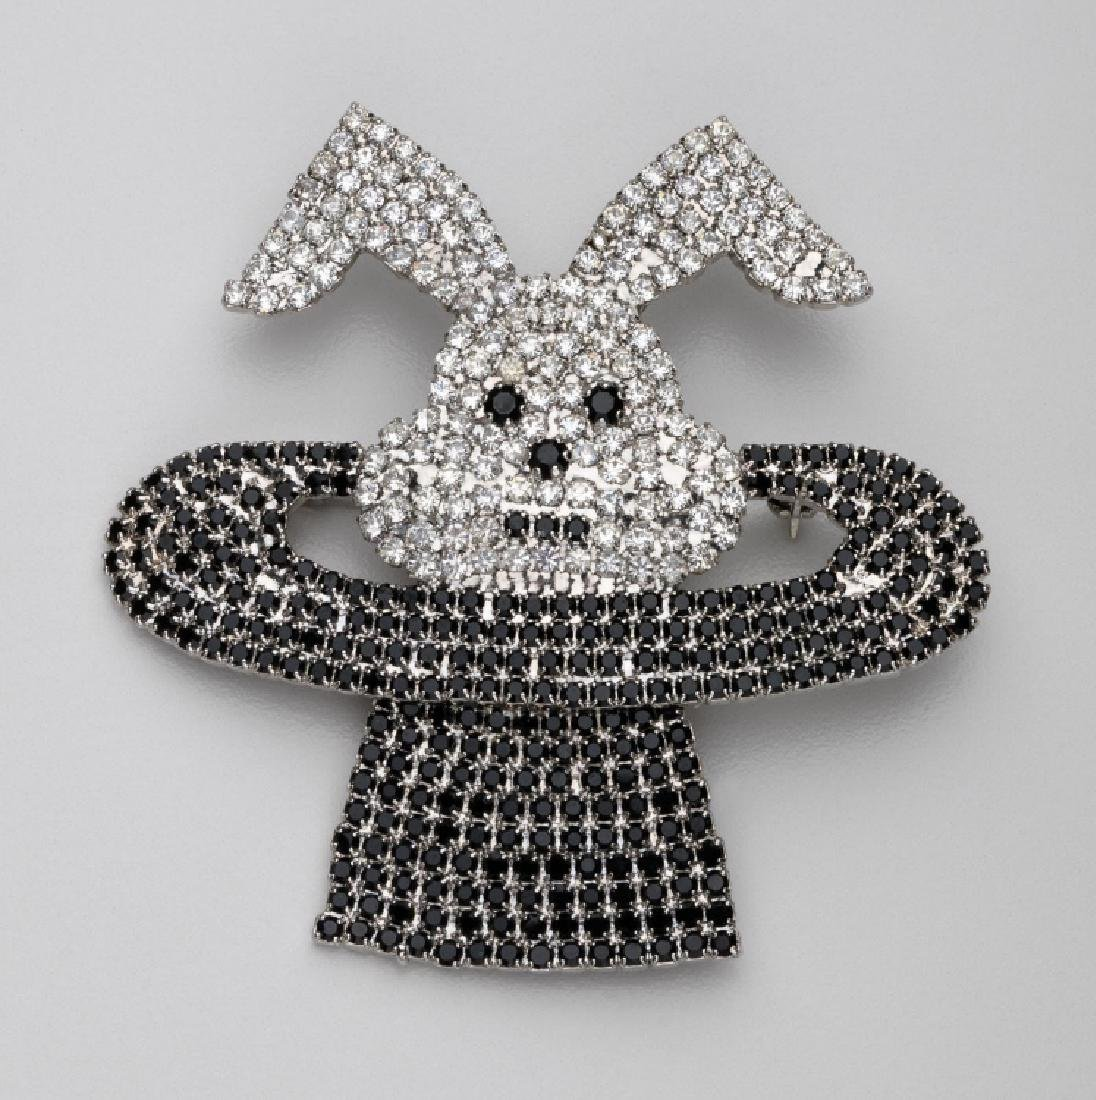 BUTLER & WILSON RHINESTONE BUNNY IN A MAGICIANS HAT